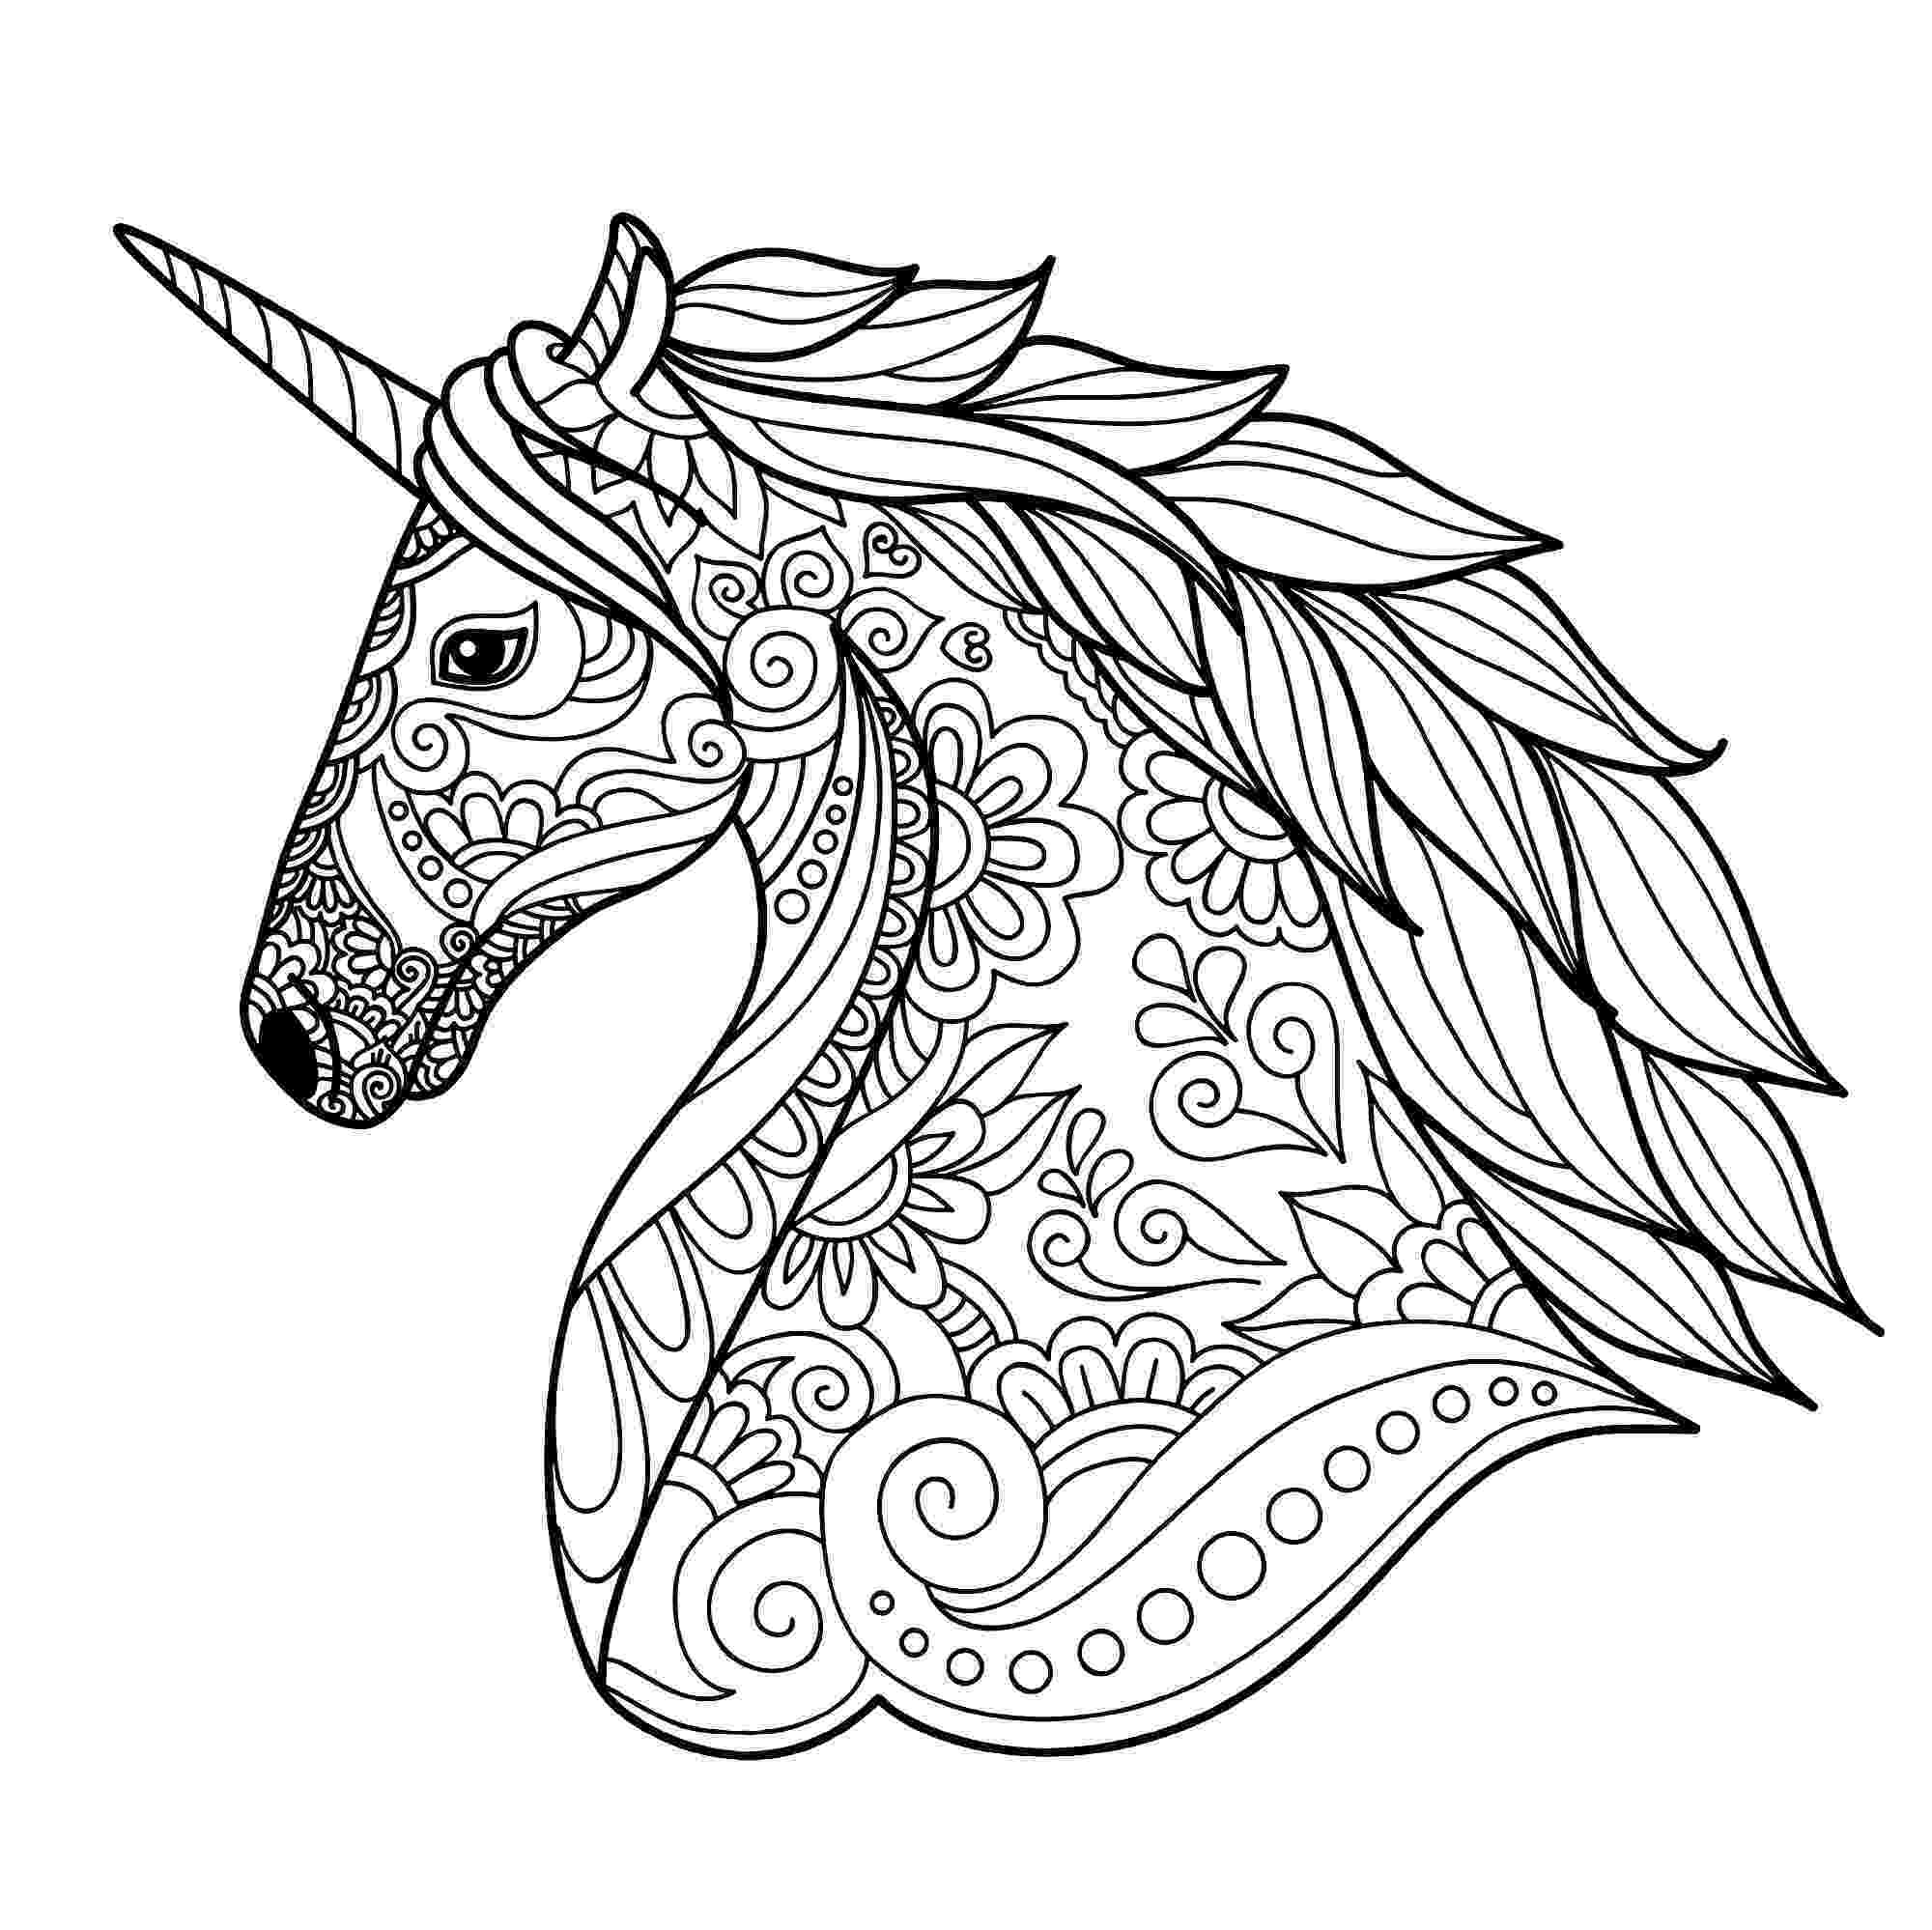 coloring page unicorn unicorn drawing pages at getdrawings free download unicorn coloring page